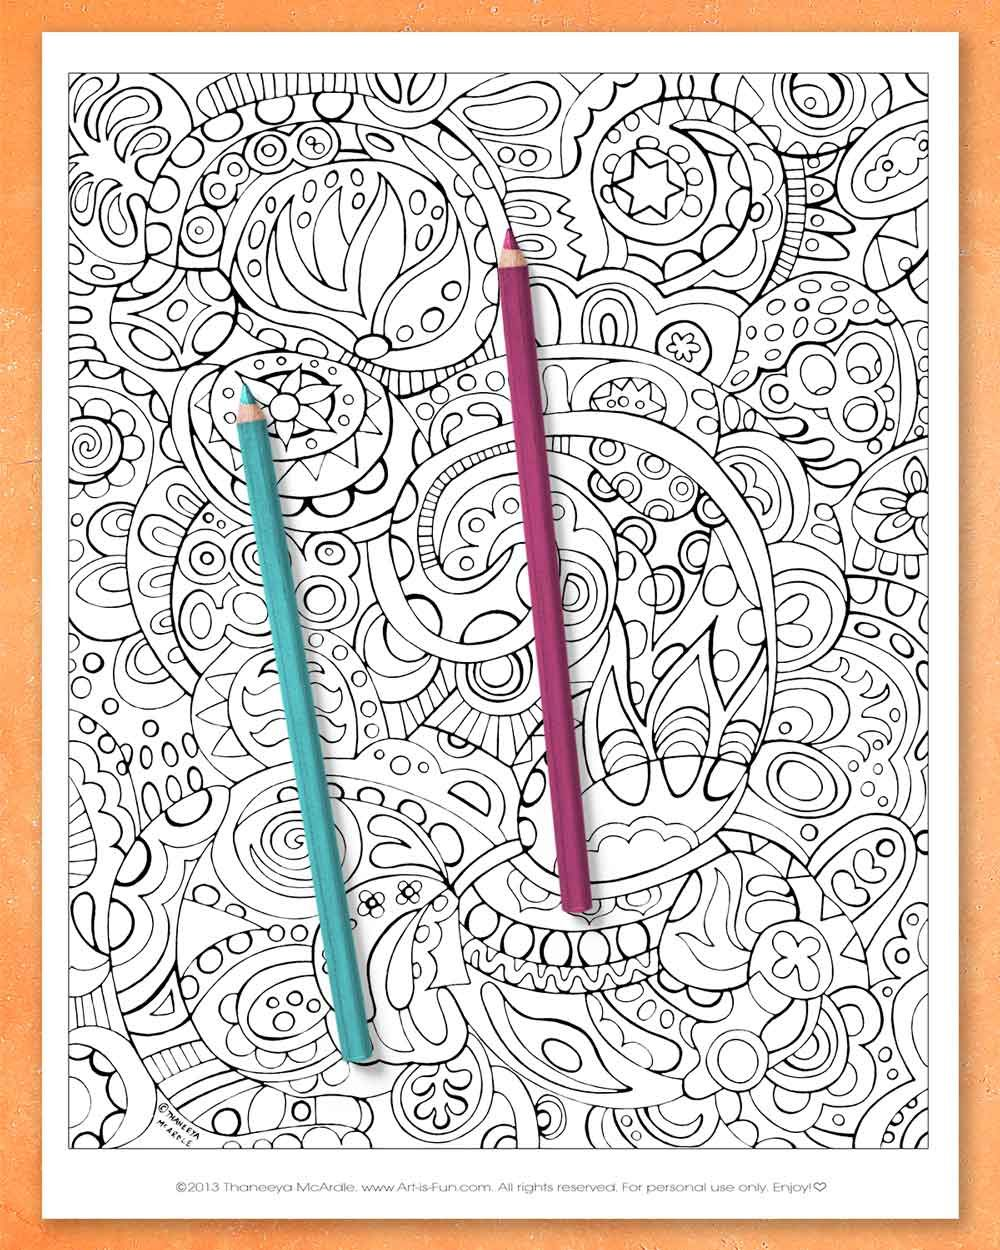 Abstract Coloring Pages Printable E Book Of Groovy Abstract Designs For You To Color Art Is Fun In 2020 Abstract Coloring Pages Coloring Pages Printable Coloring Book